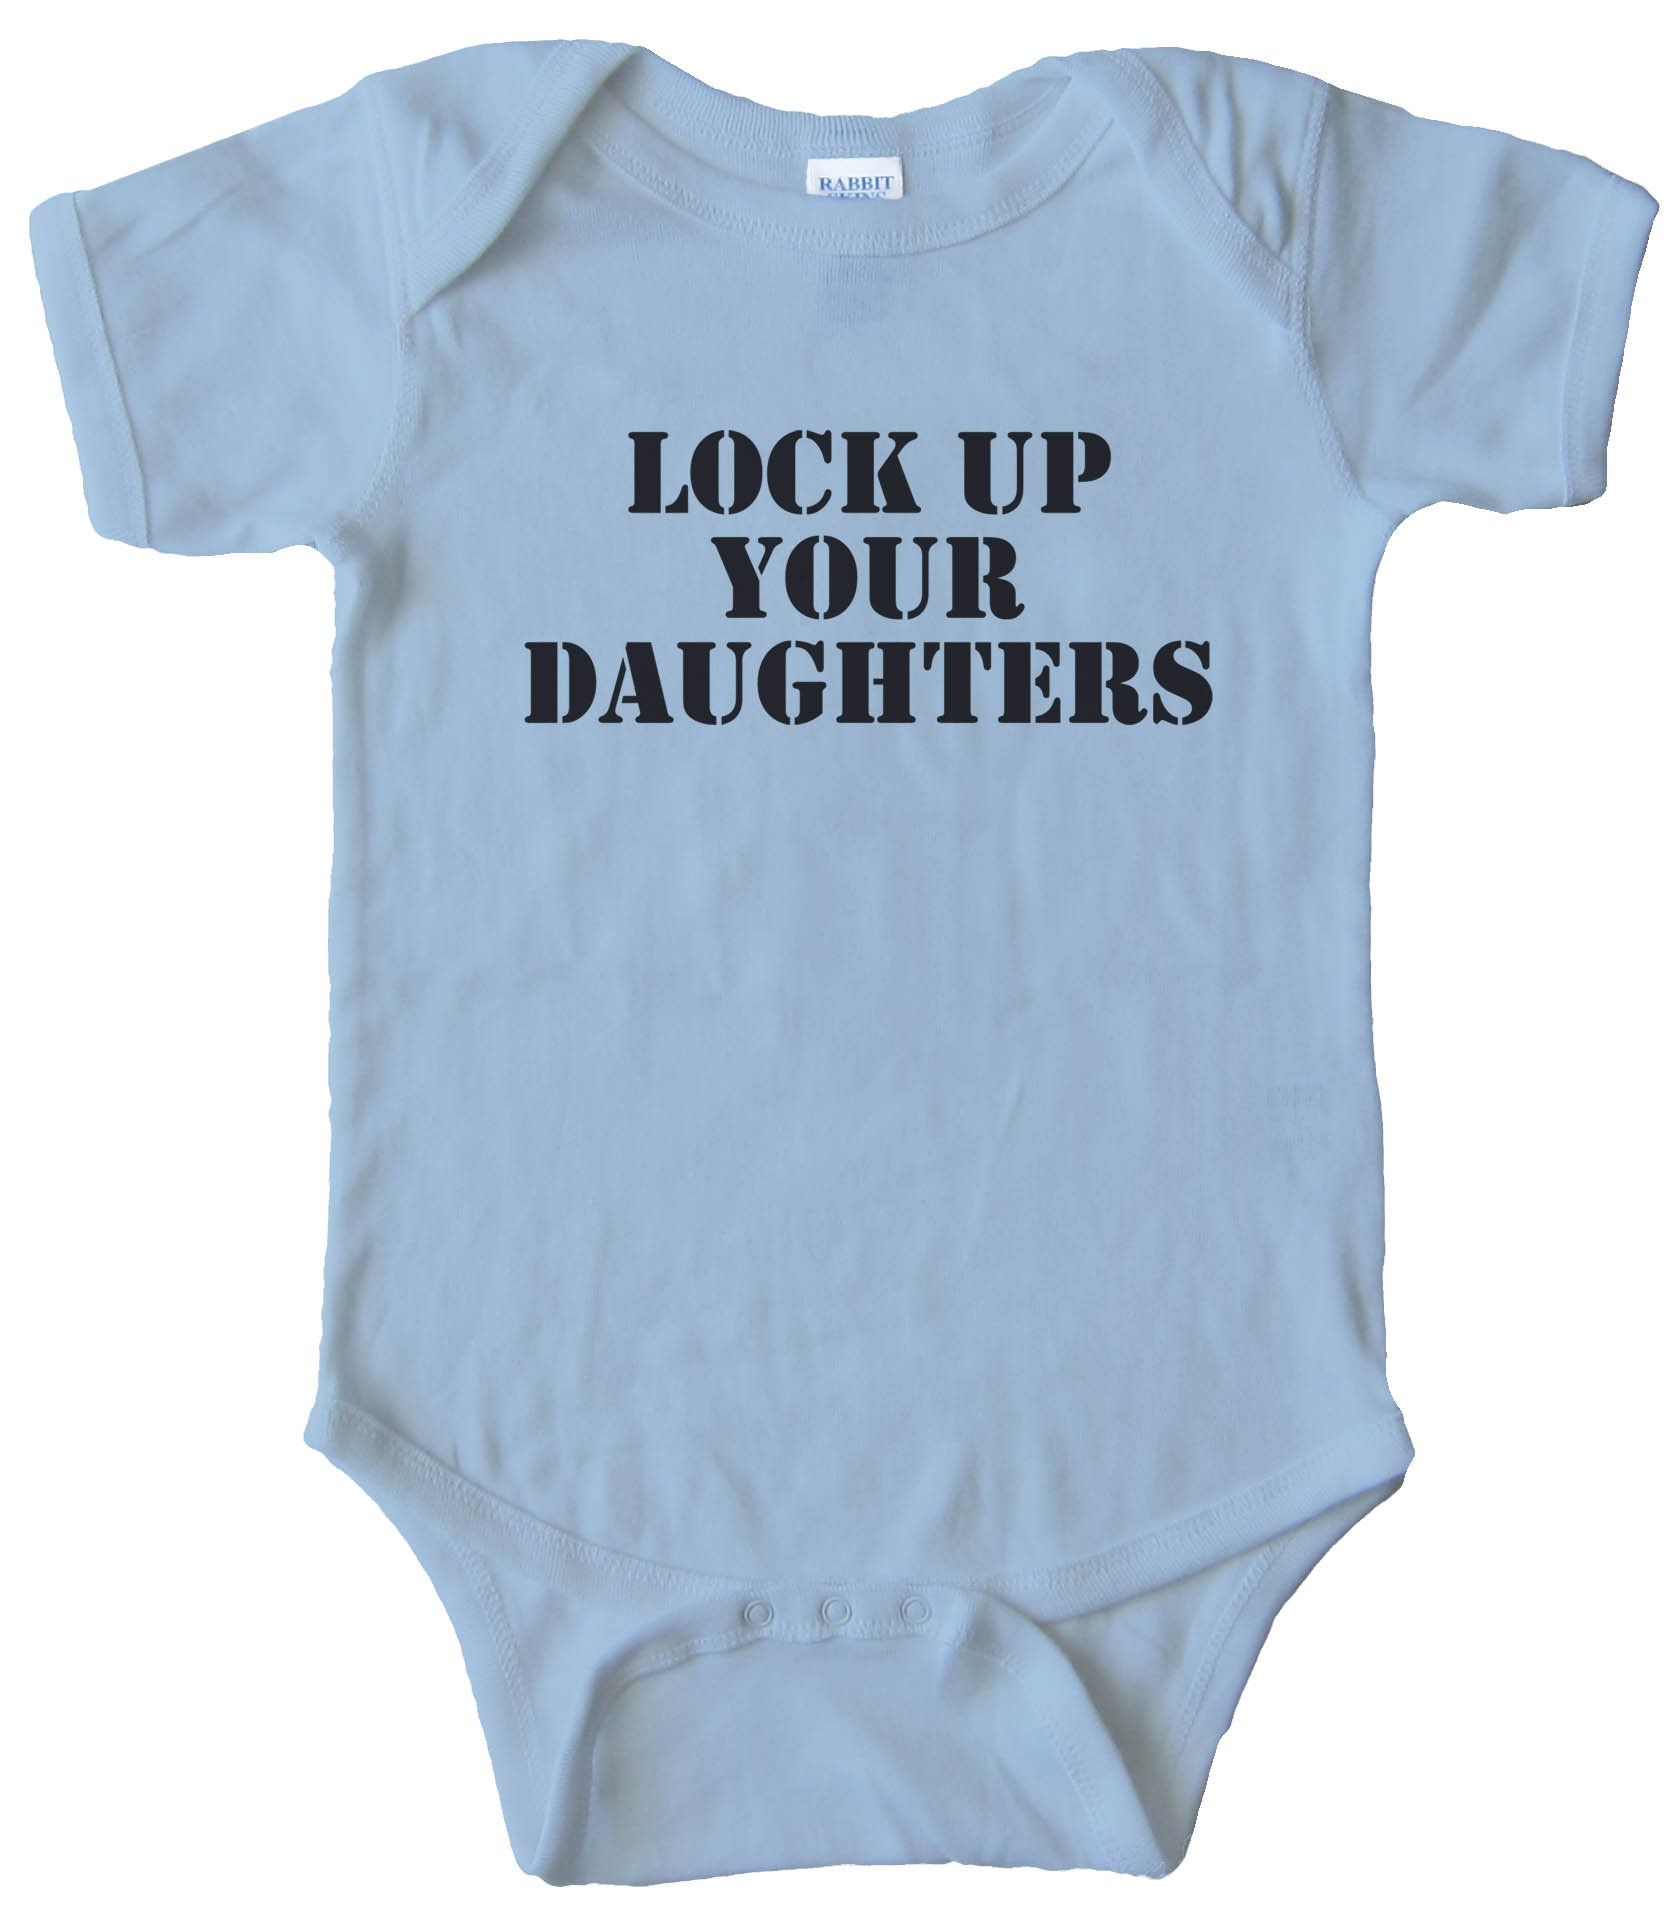 Lock Up Your Daughters - Baby Bodysuit